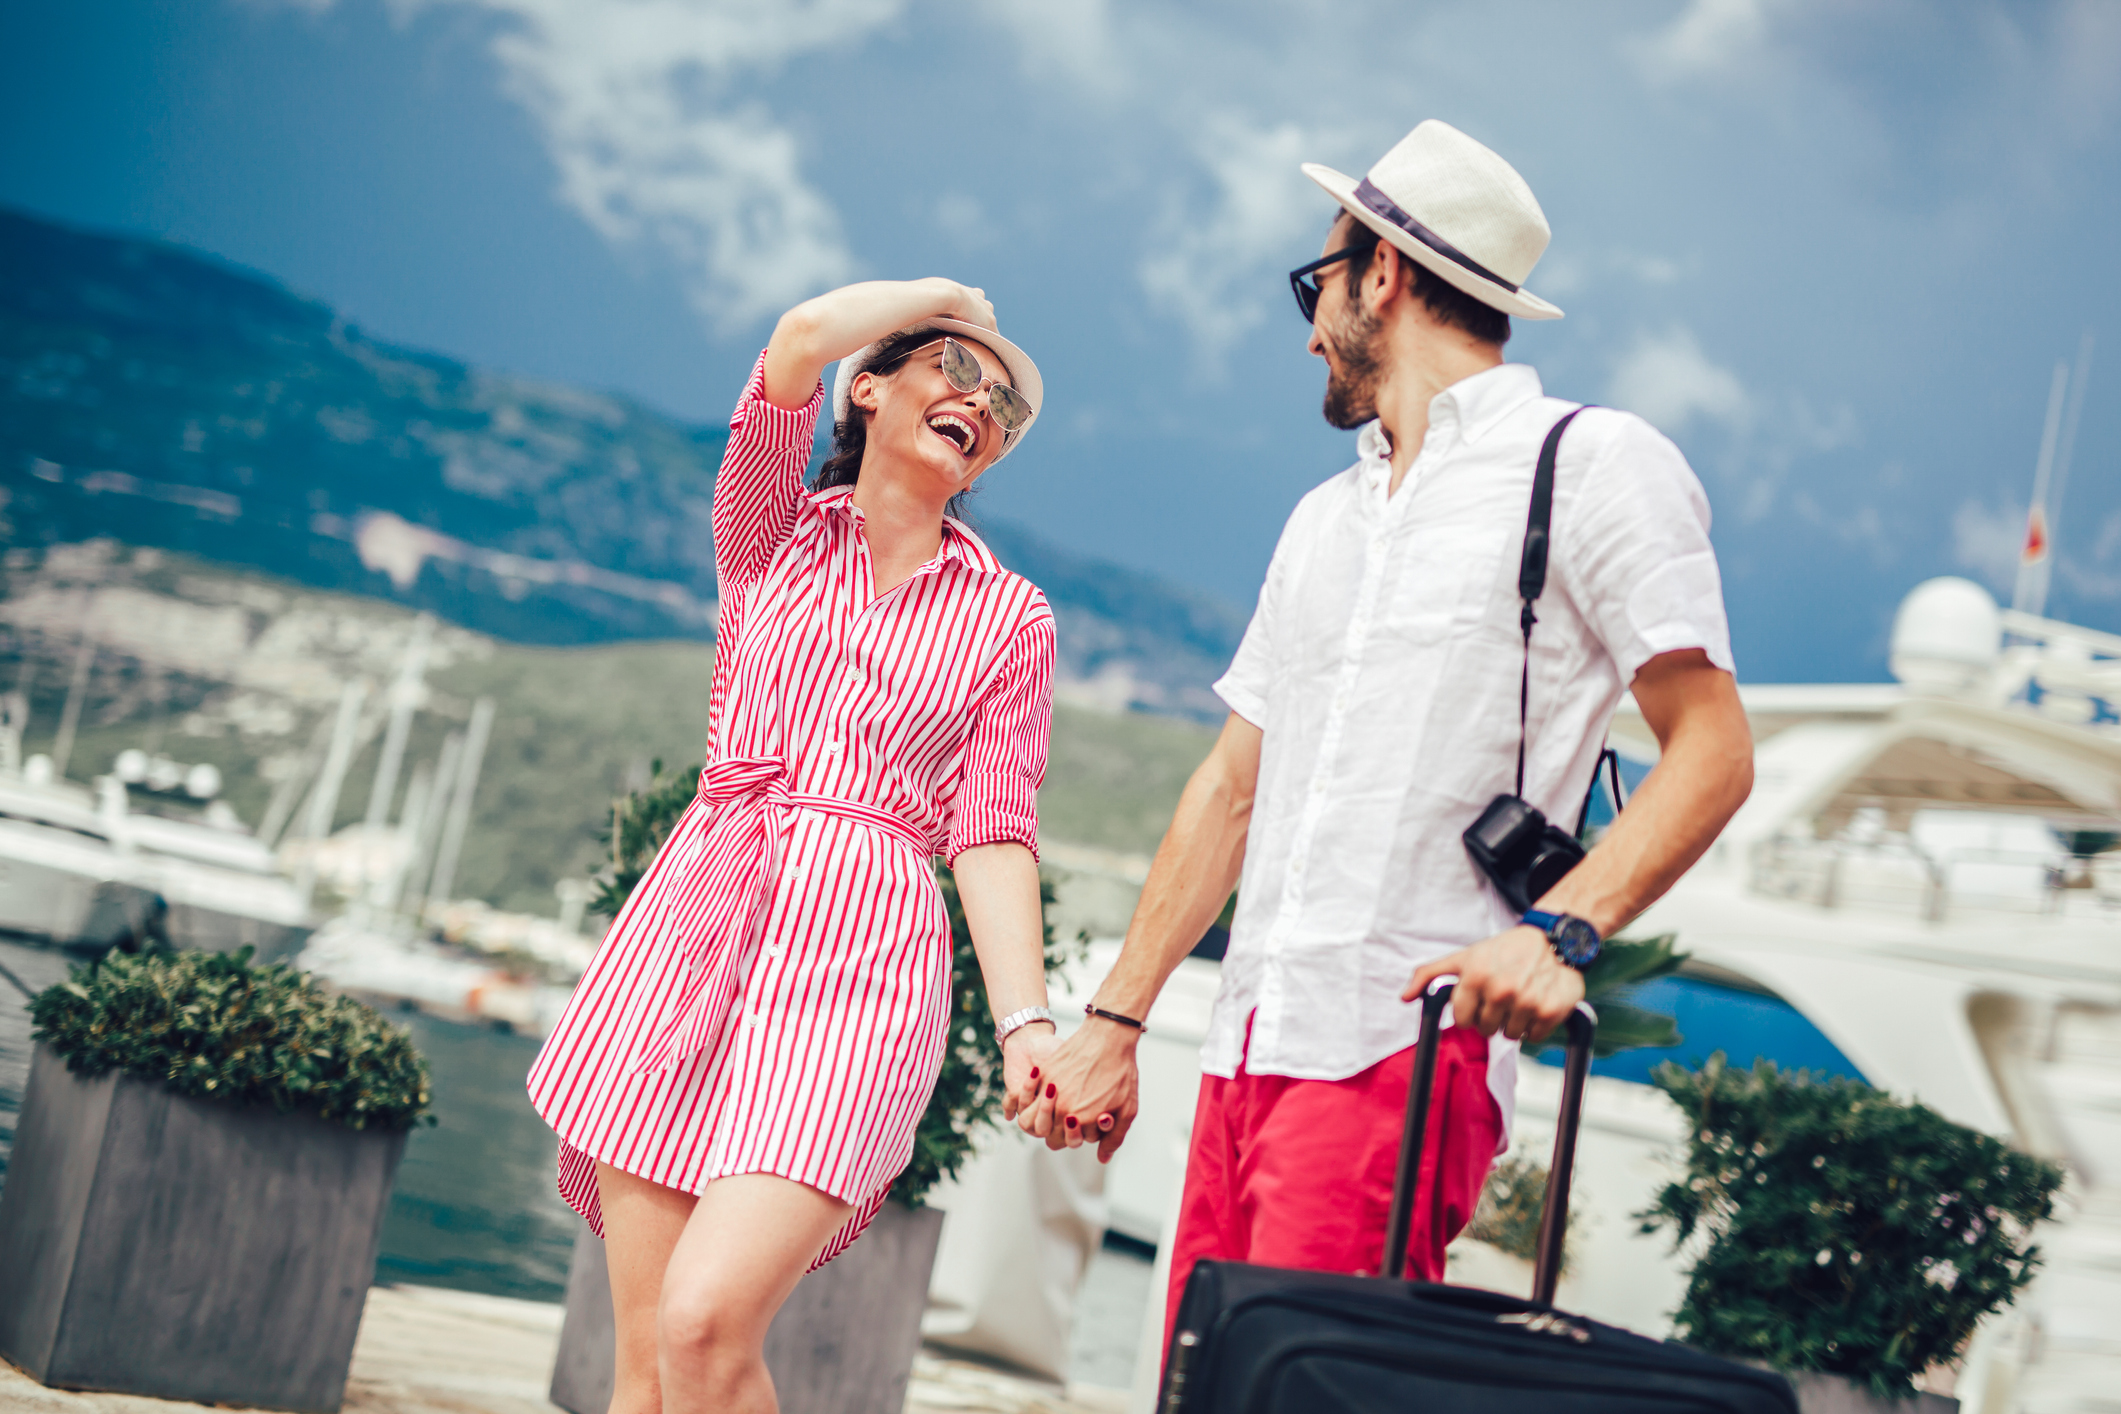 Couple in their 30s smiling while traveling.